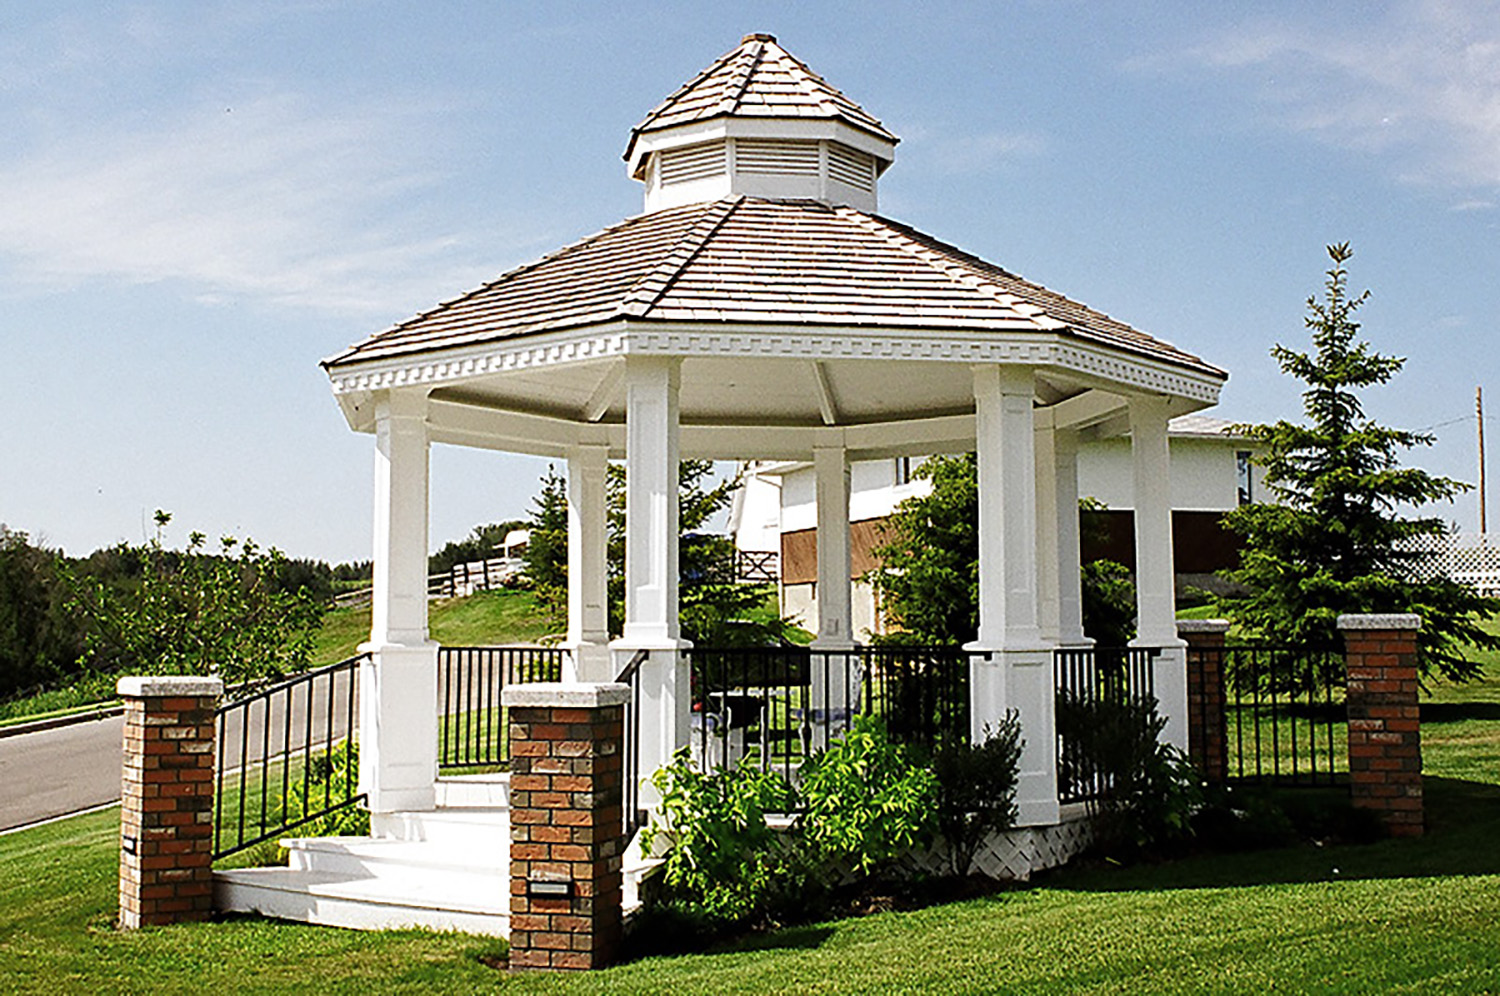 A Gazebo constructed in Calgary landscaping project